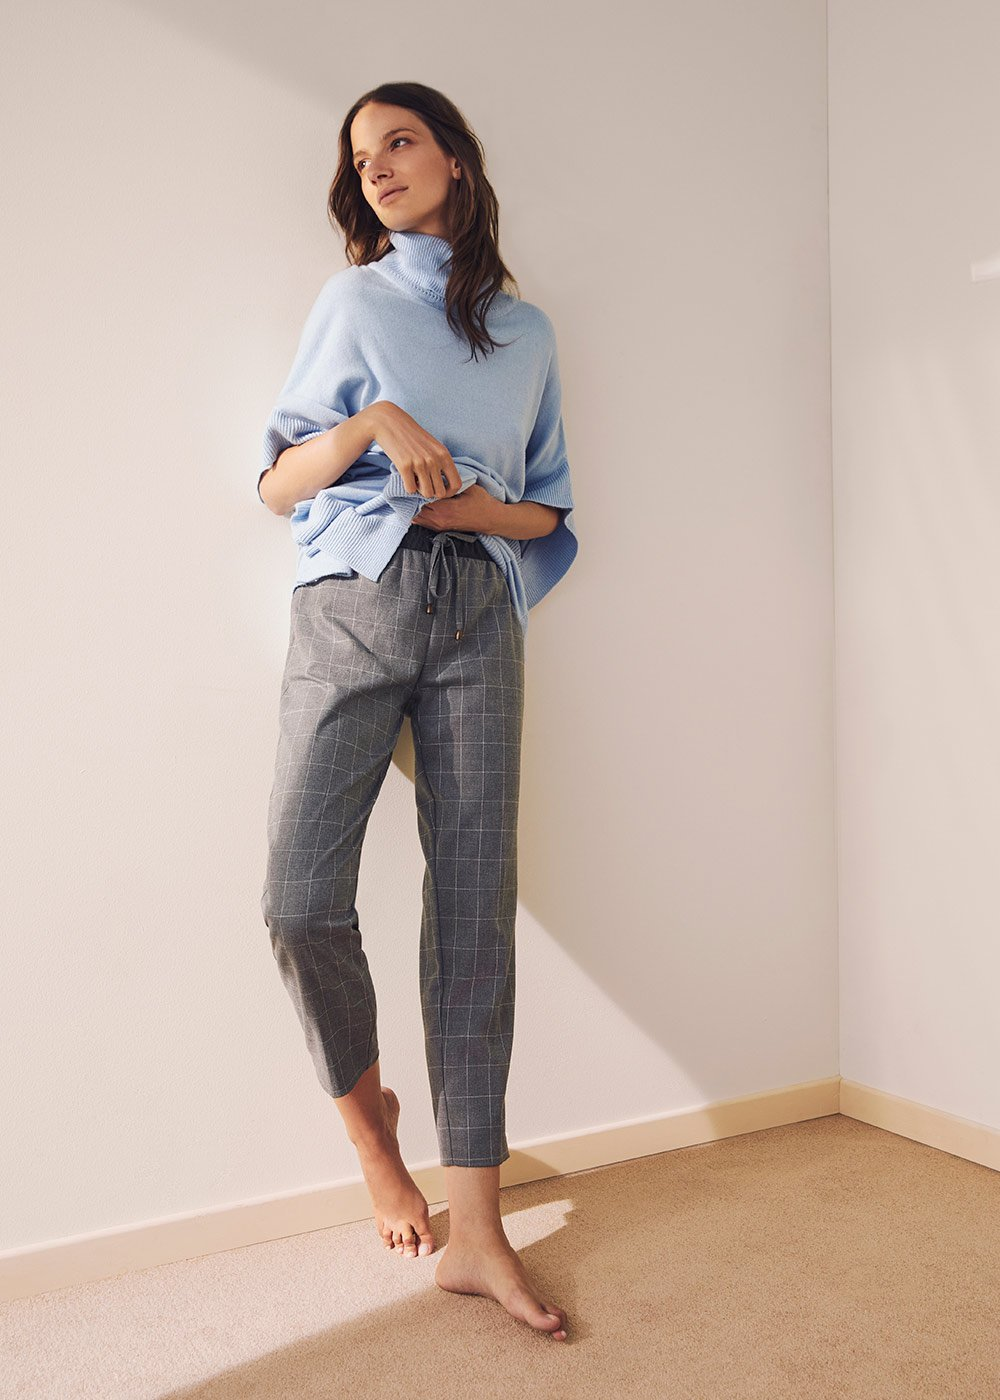 Pantalone Cara in tessuto flanella  - Light grey\White Fantasia - Donna